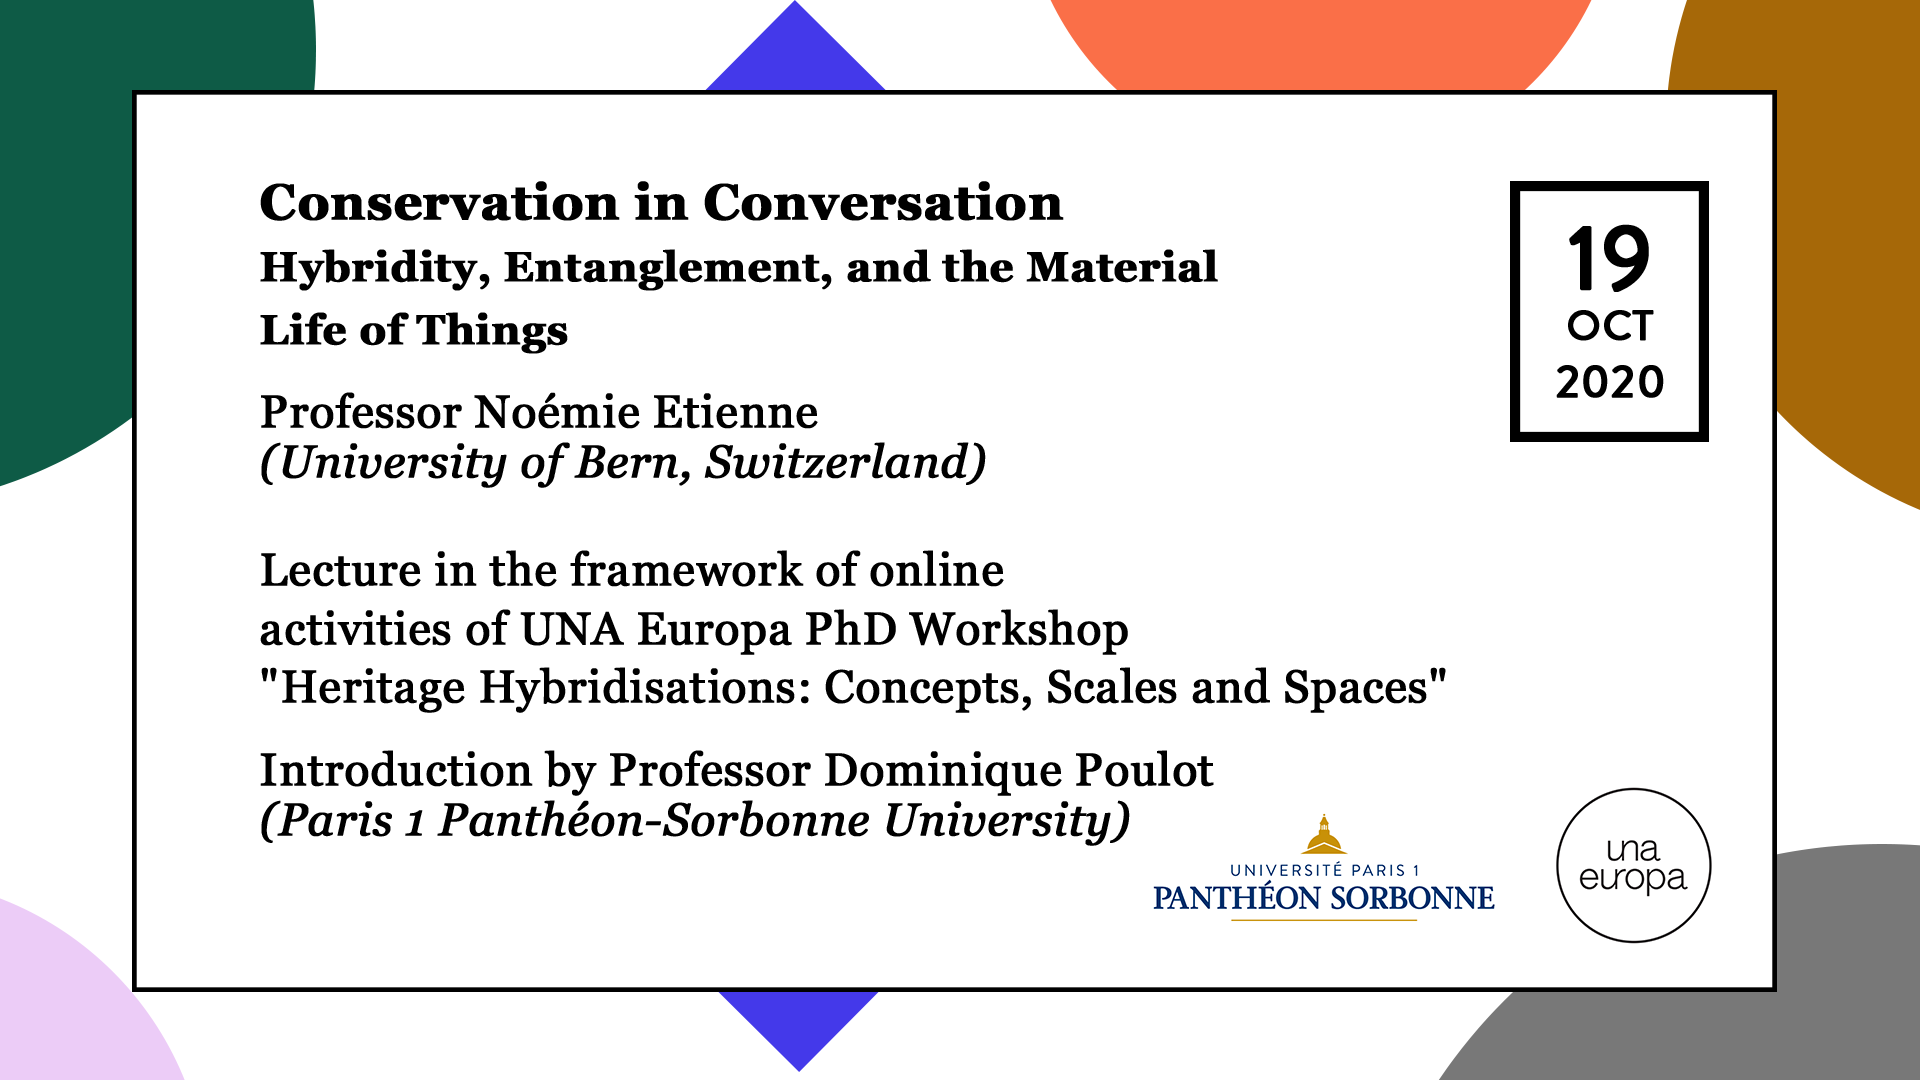 Una Europa - Conservation in Conversation - Hybridity, Entanglement, and the Material Life of Things